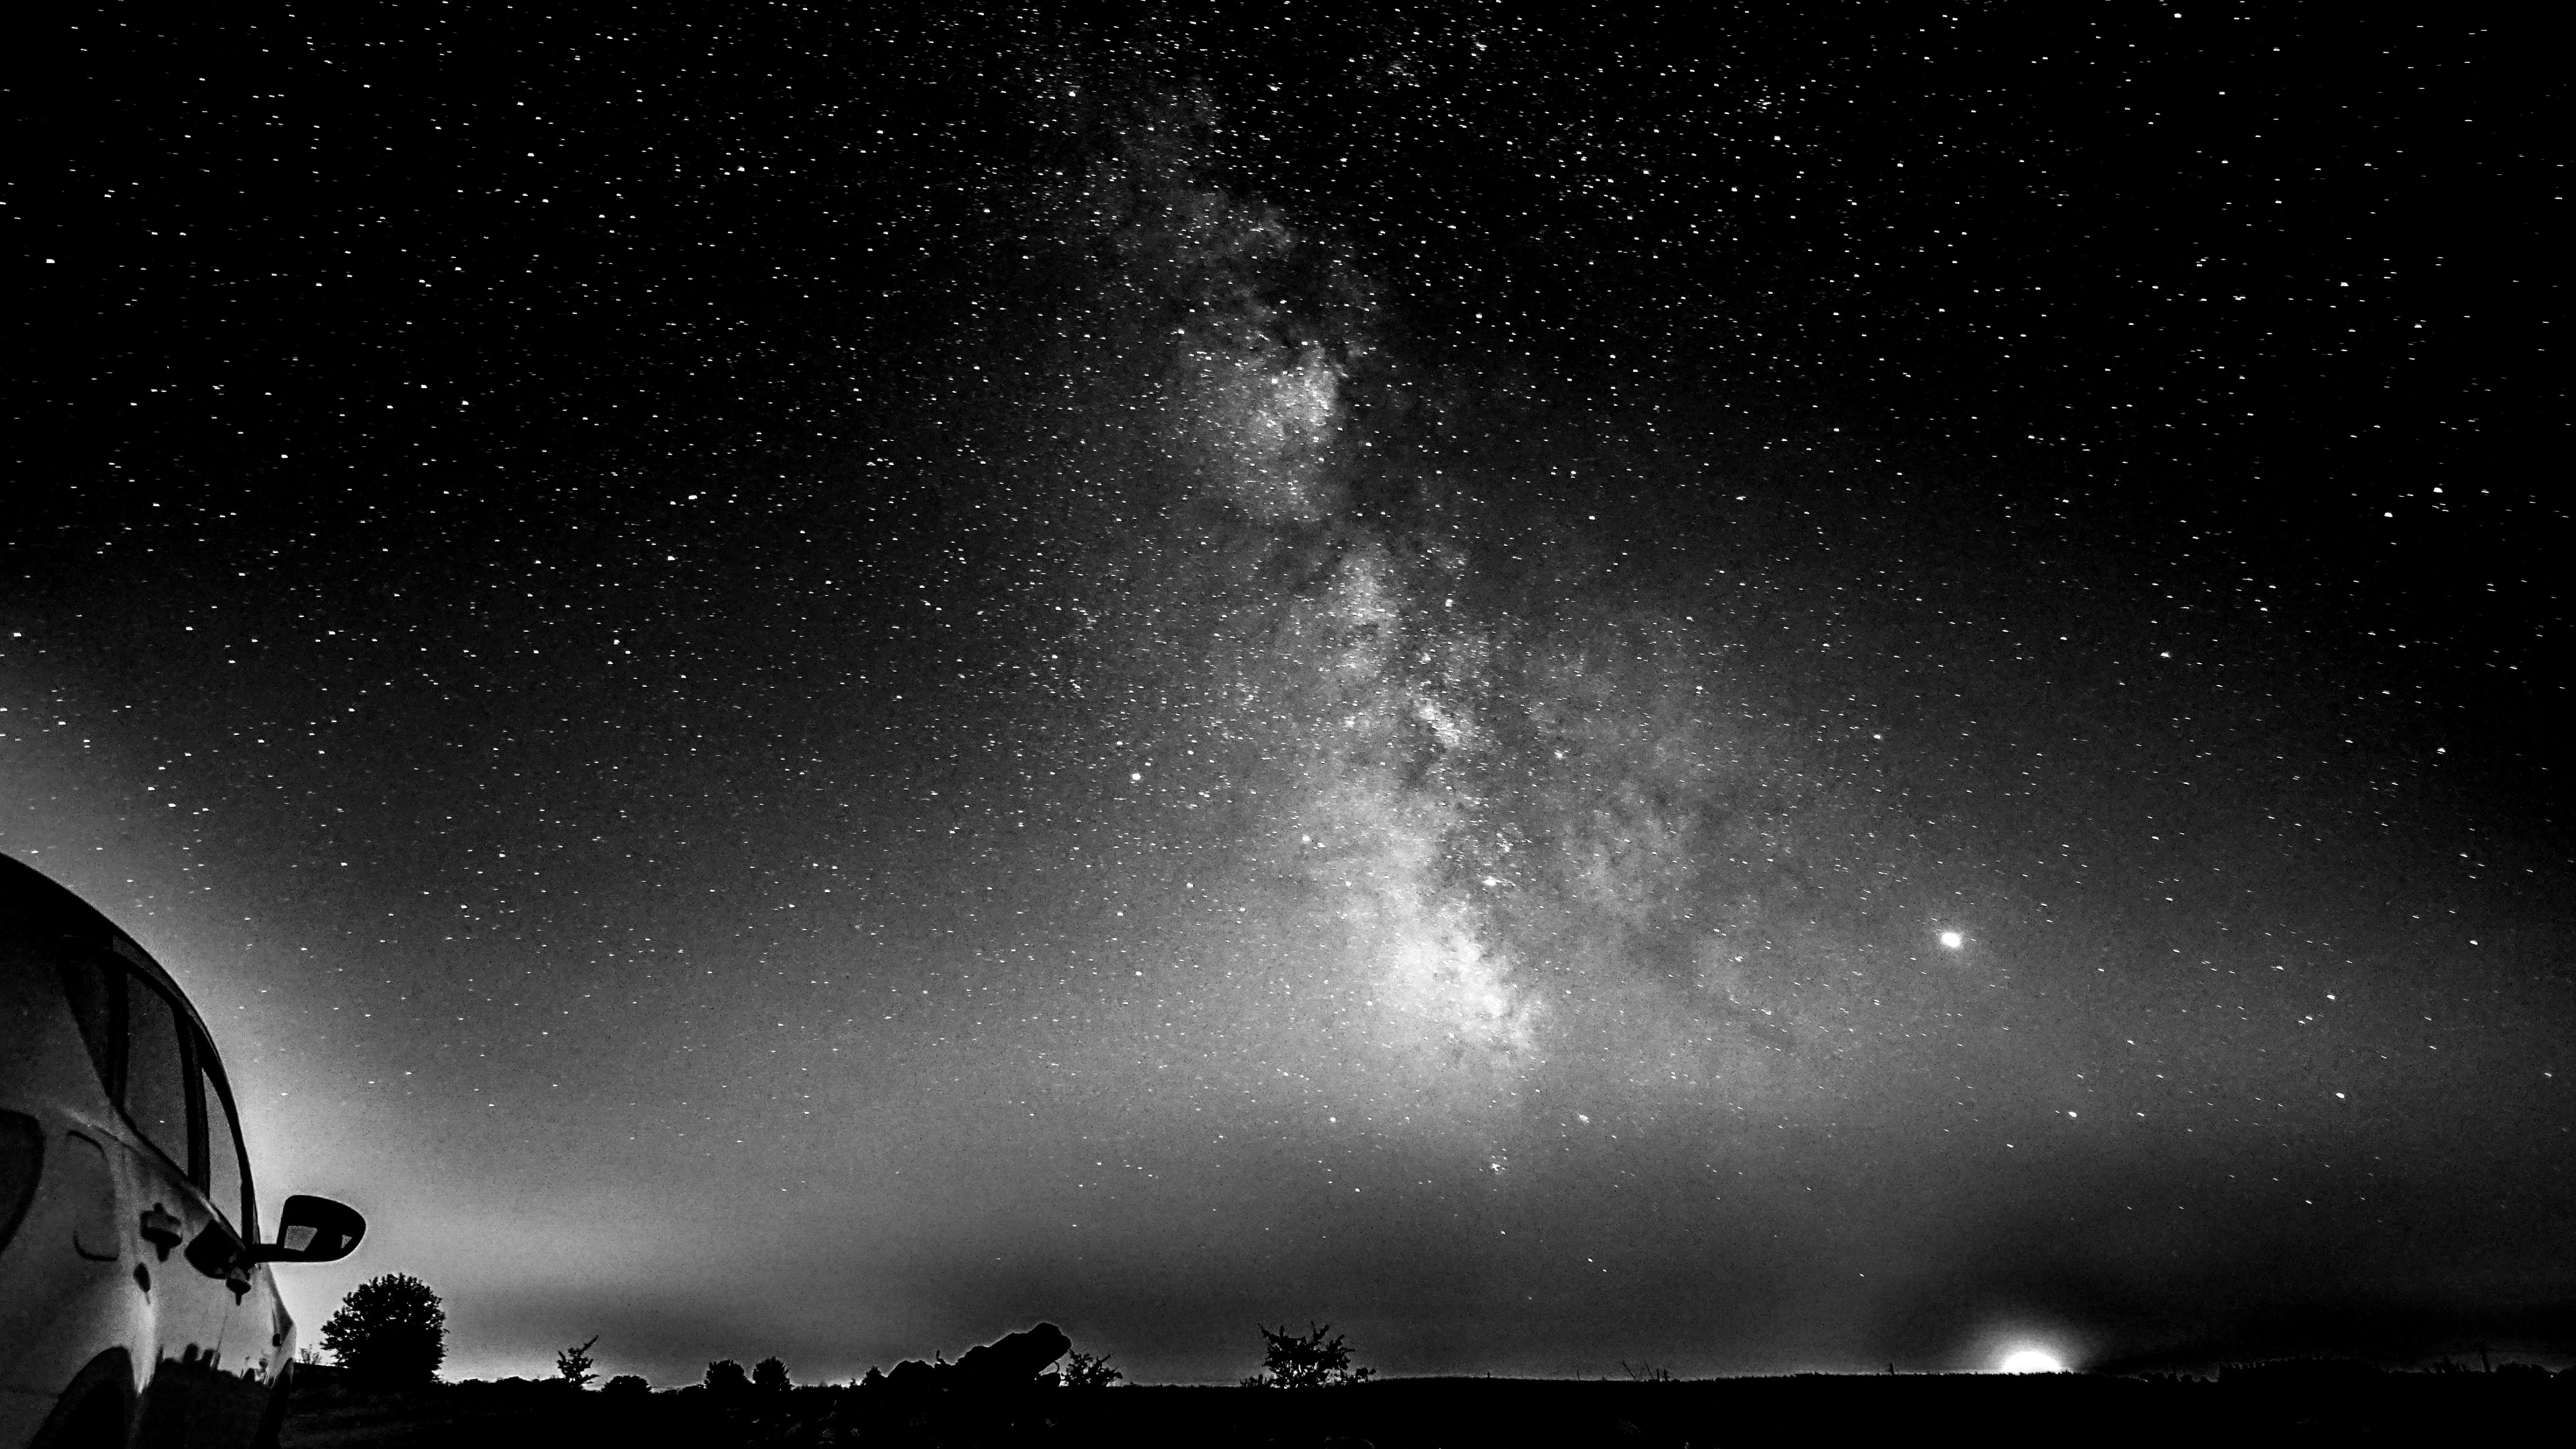 Milky Way first attempt BW